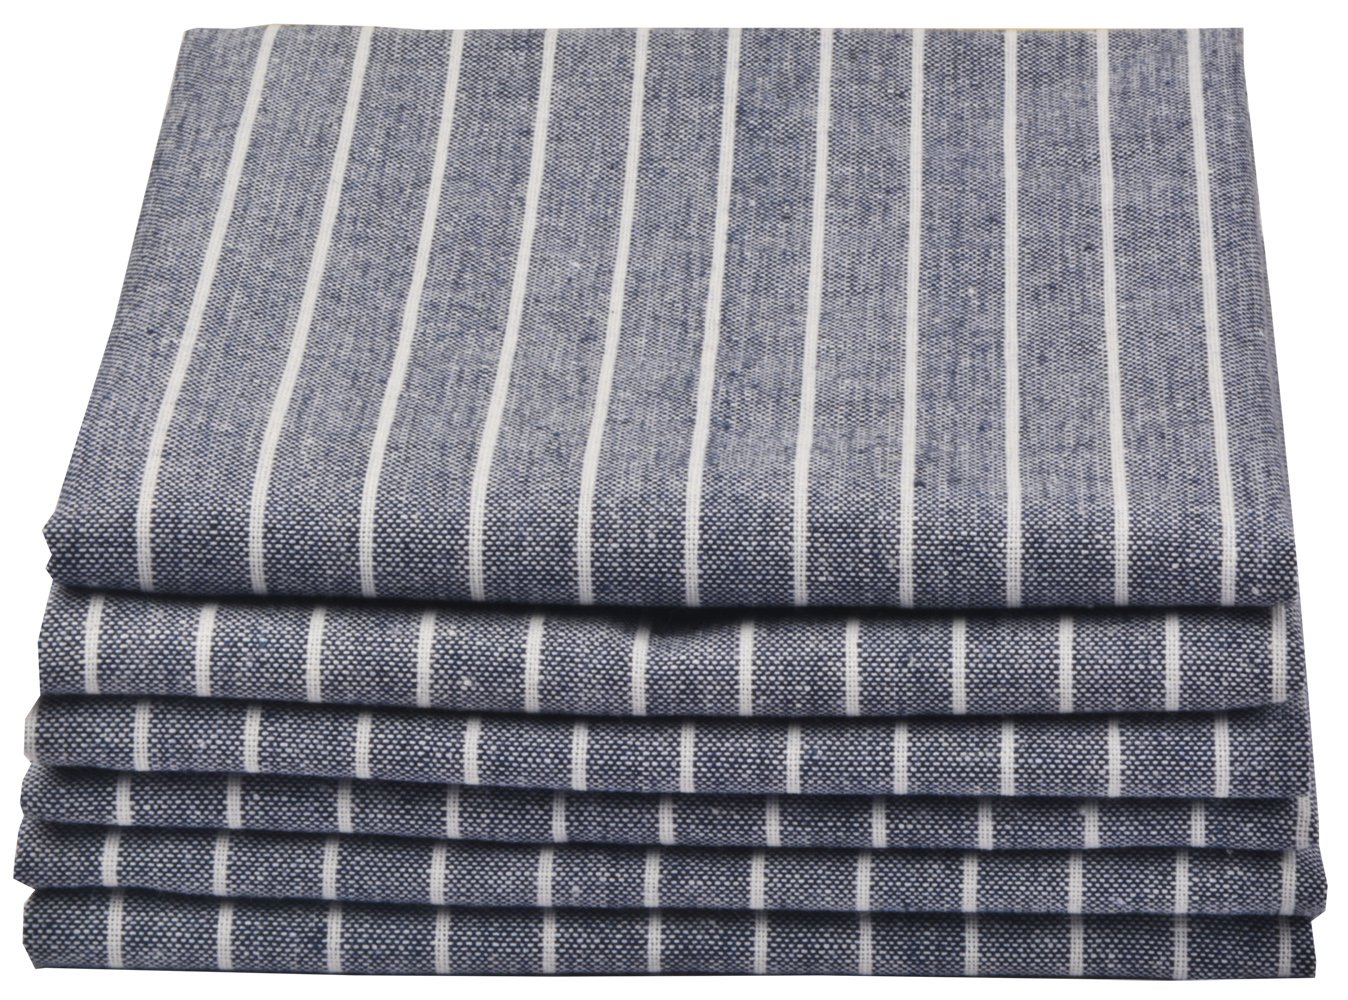 Sinland Linen Napkins Oversized Dinner Napkins Tailored with Mitered Corners and a Generous Hem 20Inch x 20Inch 6 Packs (Grey Blue)